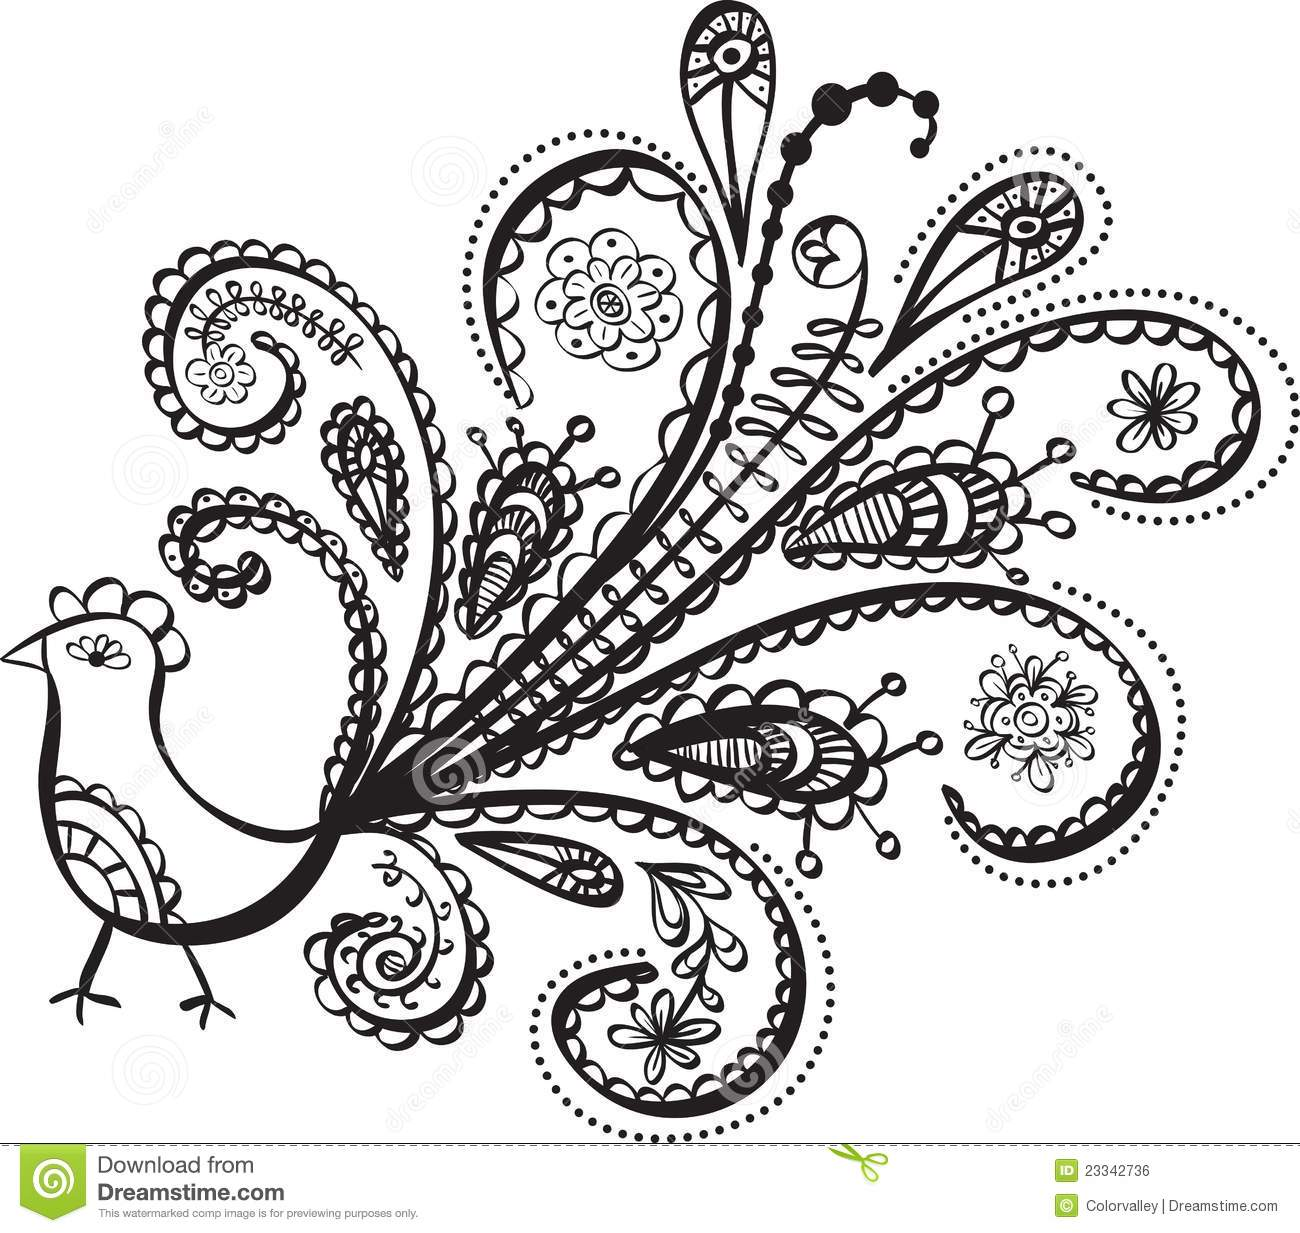 Quail Line Art : Peacock bird line art stock vector image of floral